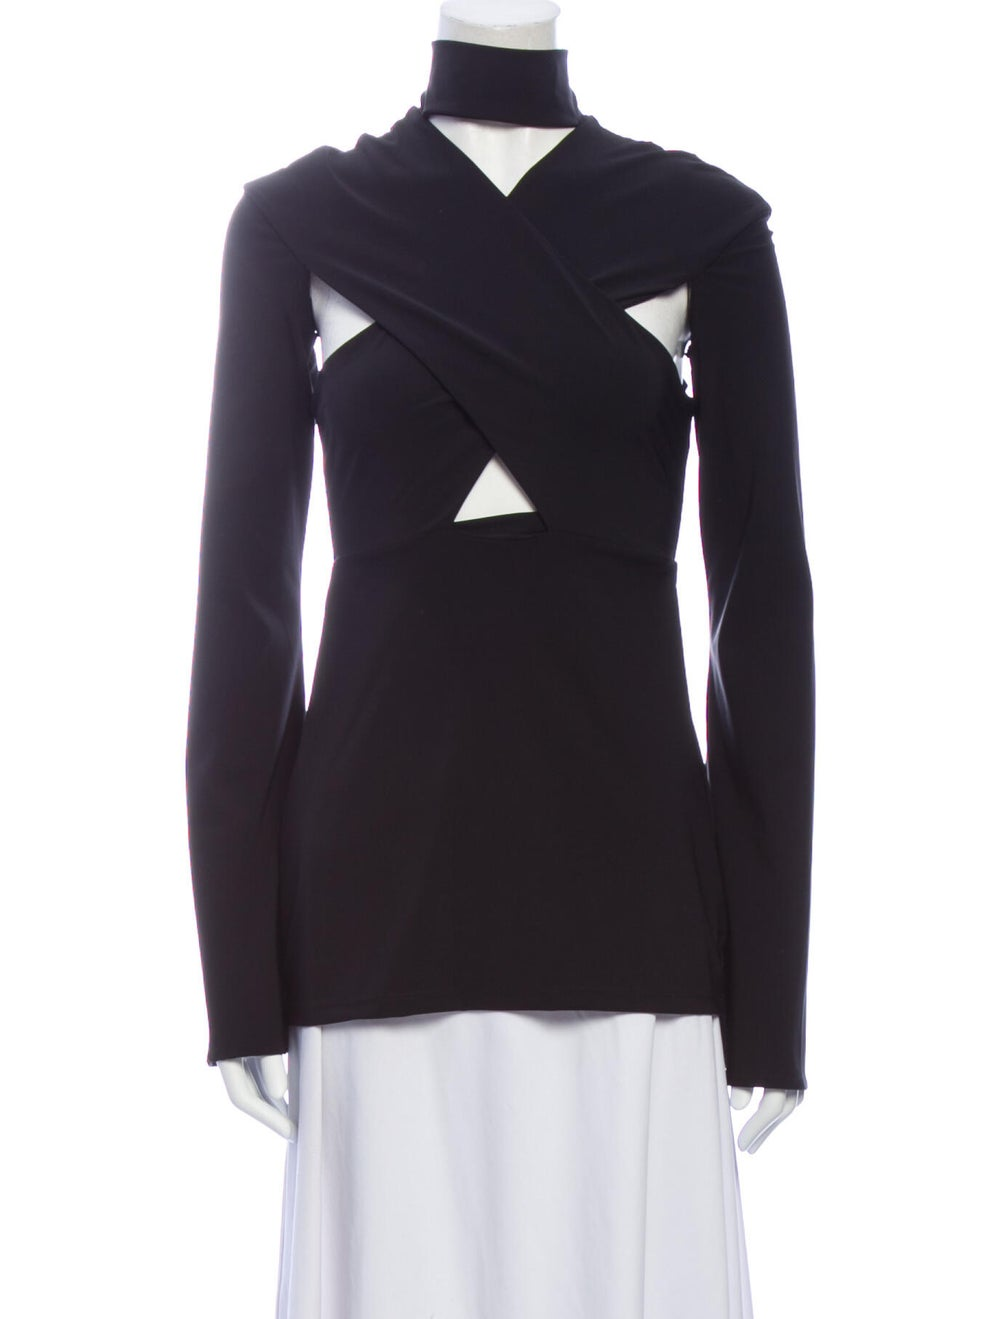 Beaufille Mock Neck Long Sleeve Top w/ Tags Black - image 1